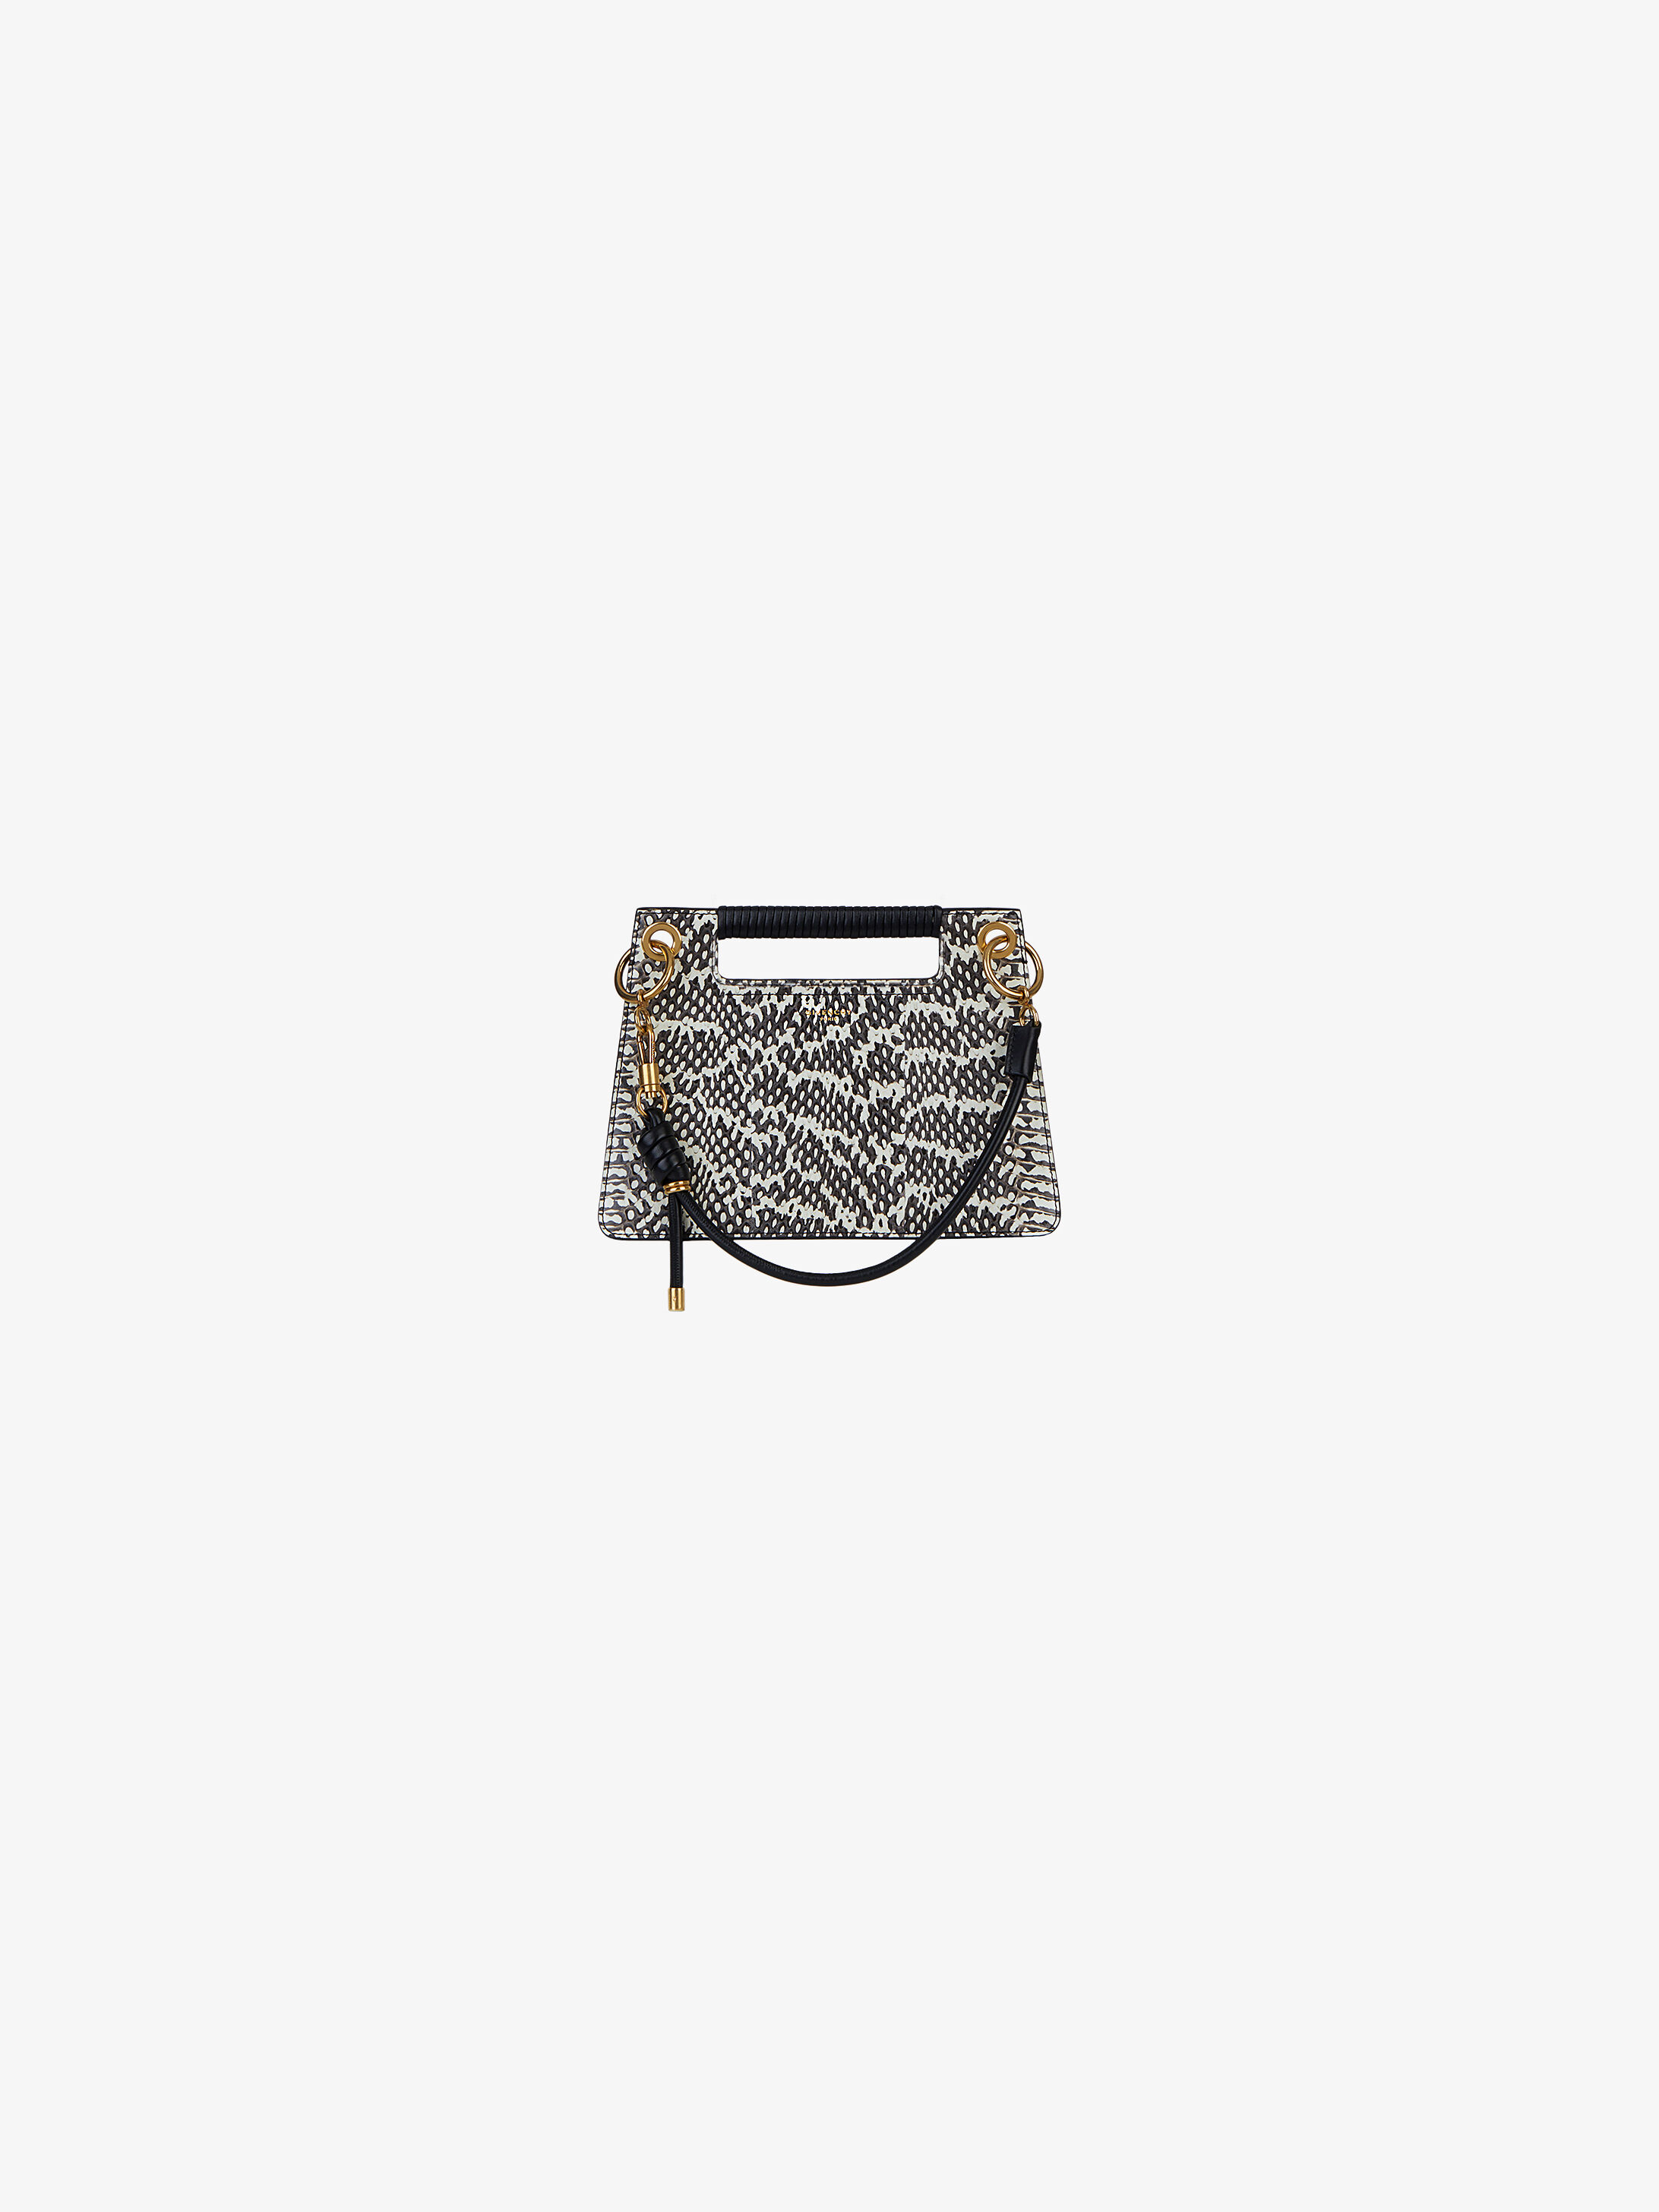 088eb91ee23a Women s Handbags collection by Givenchy.